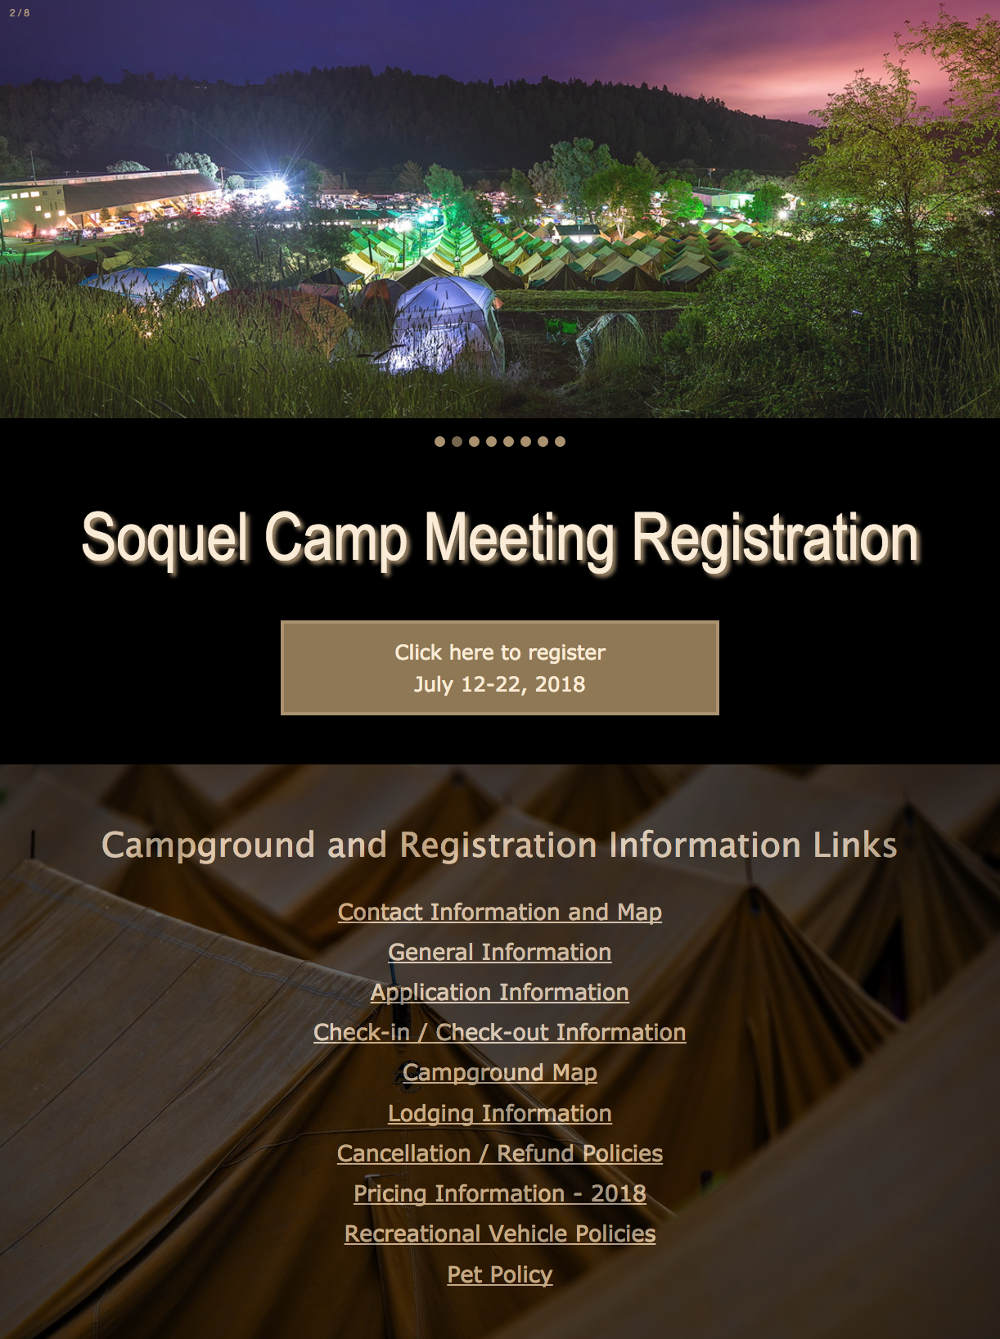 Soquel Camp Meeting registration landing page